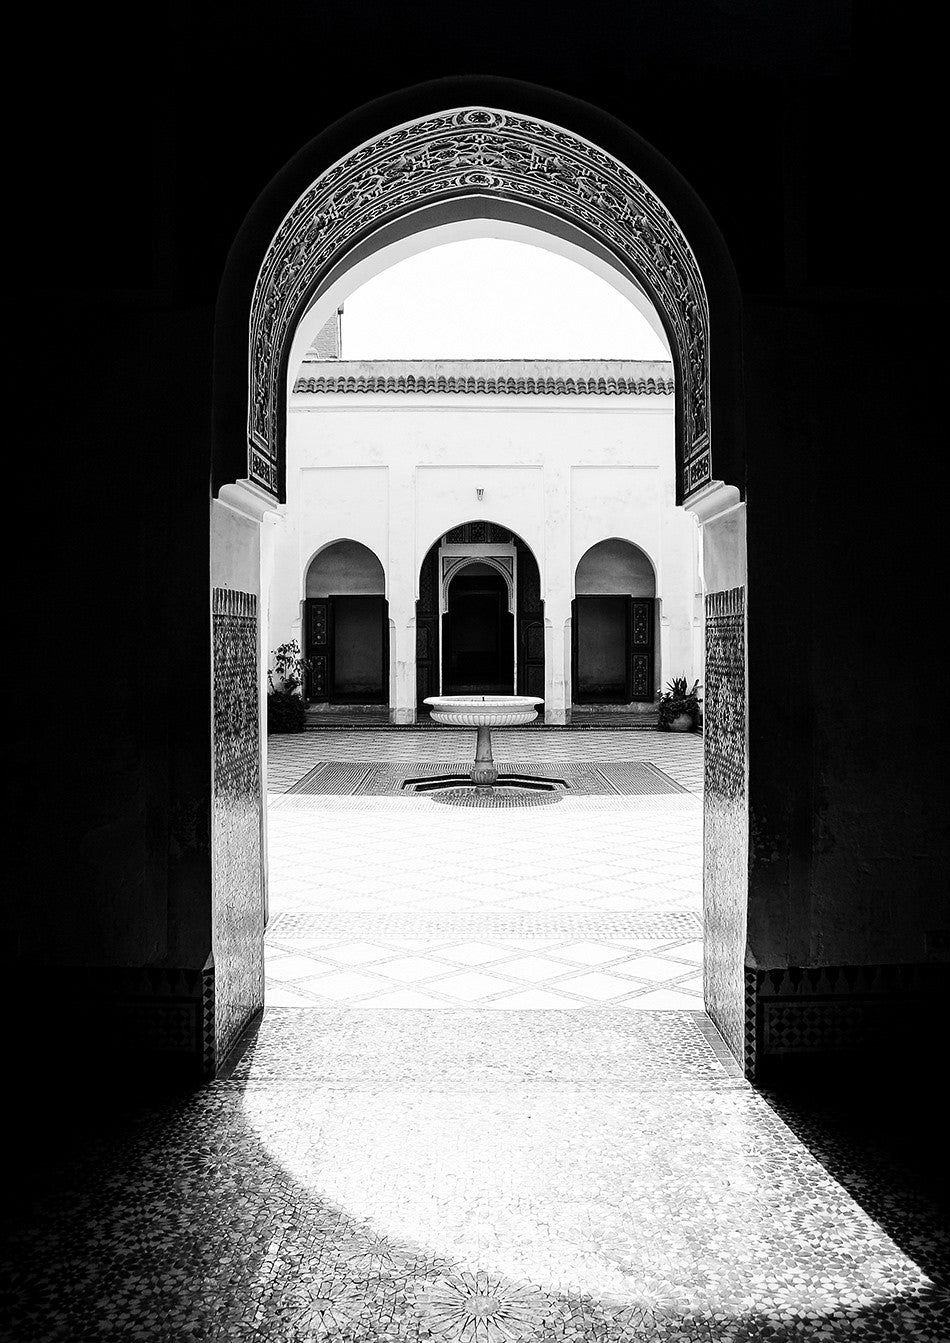 photographic artwork fine art print of Bahia Palace Marrakesh Morocco interior design limited edition print creative wedding photographer